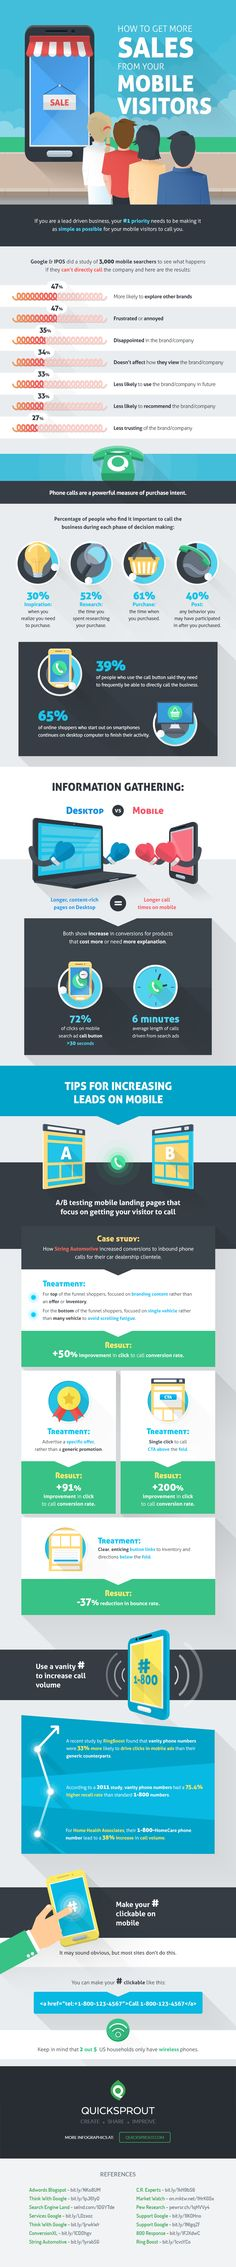 Over the next few years, most of your traffic growth will come from mobile devices. Mobile is becoming so important that Google is making algorithm changes based on mobile device usage. But what…